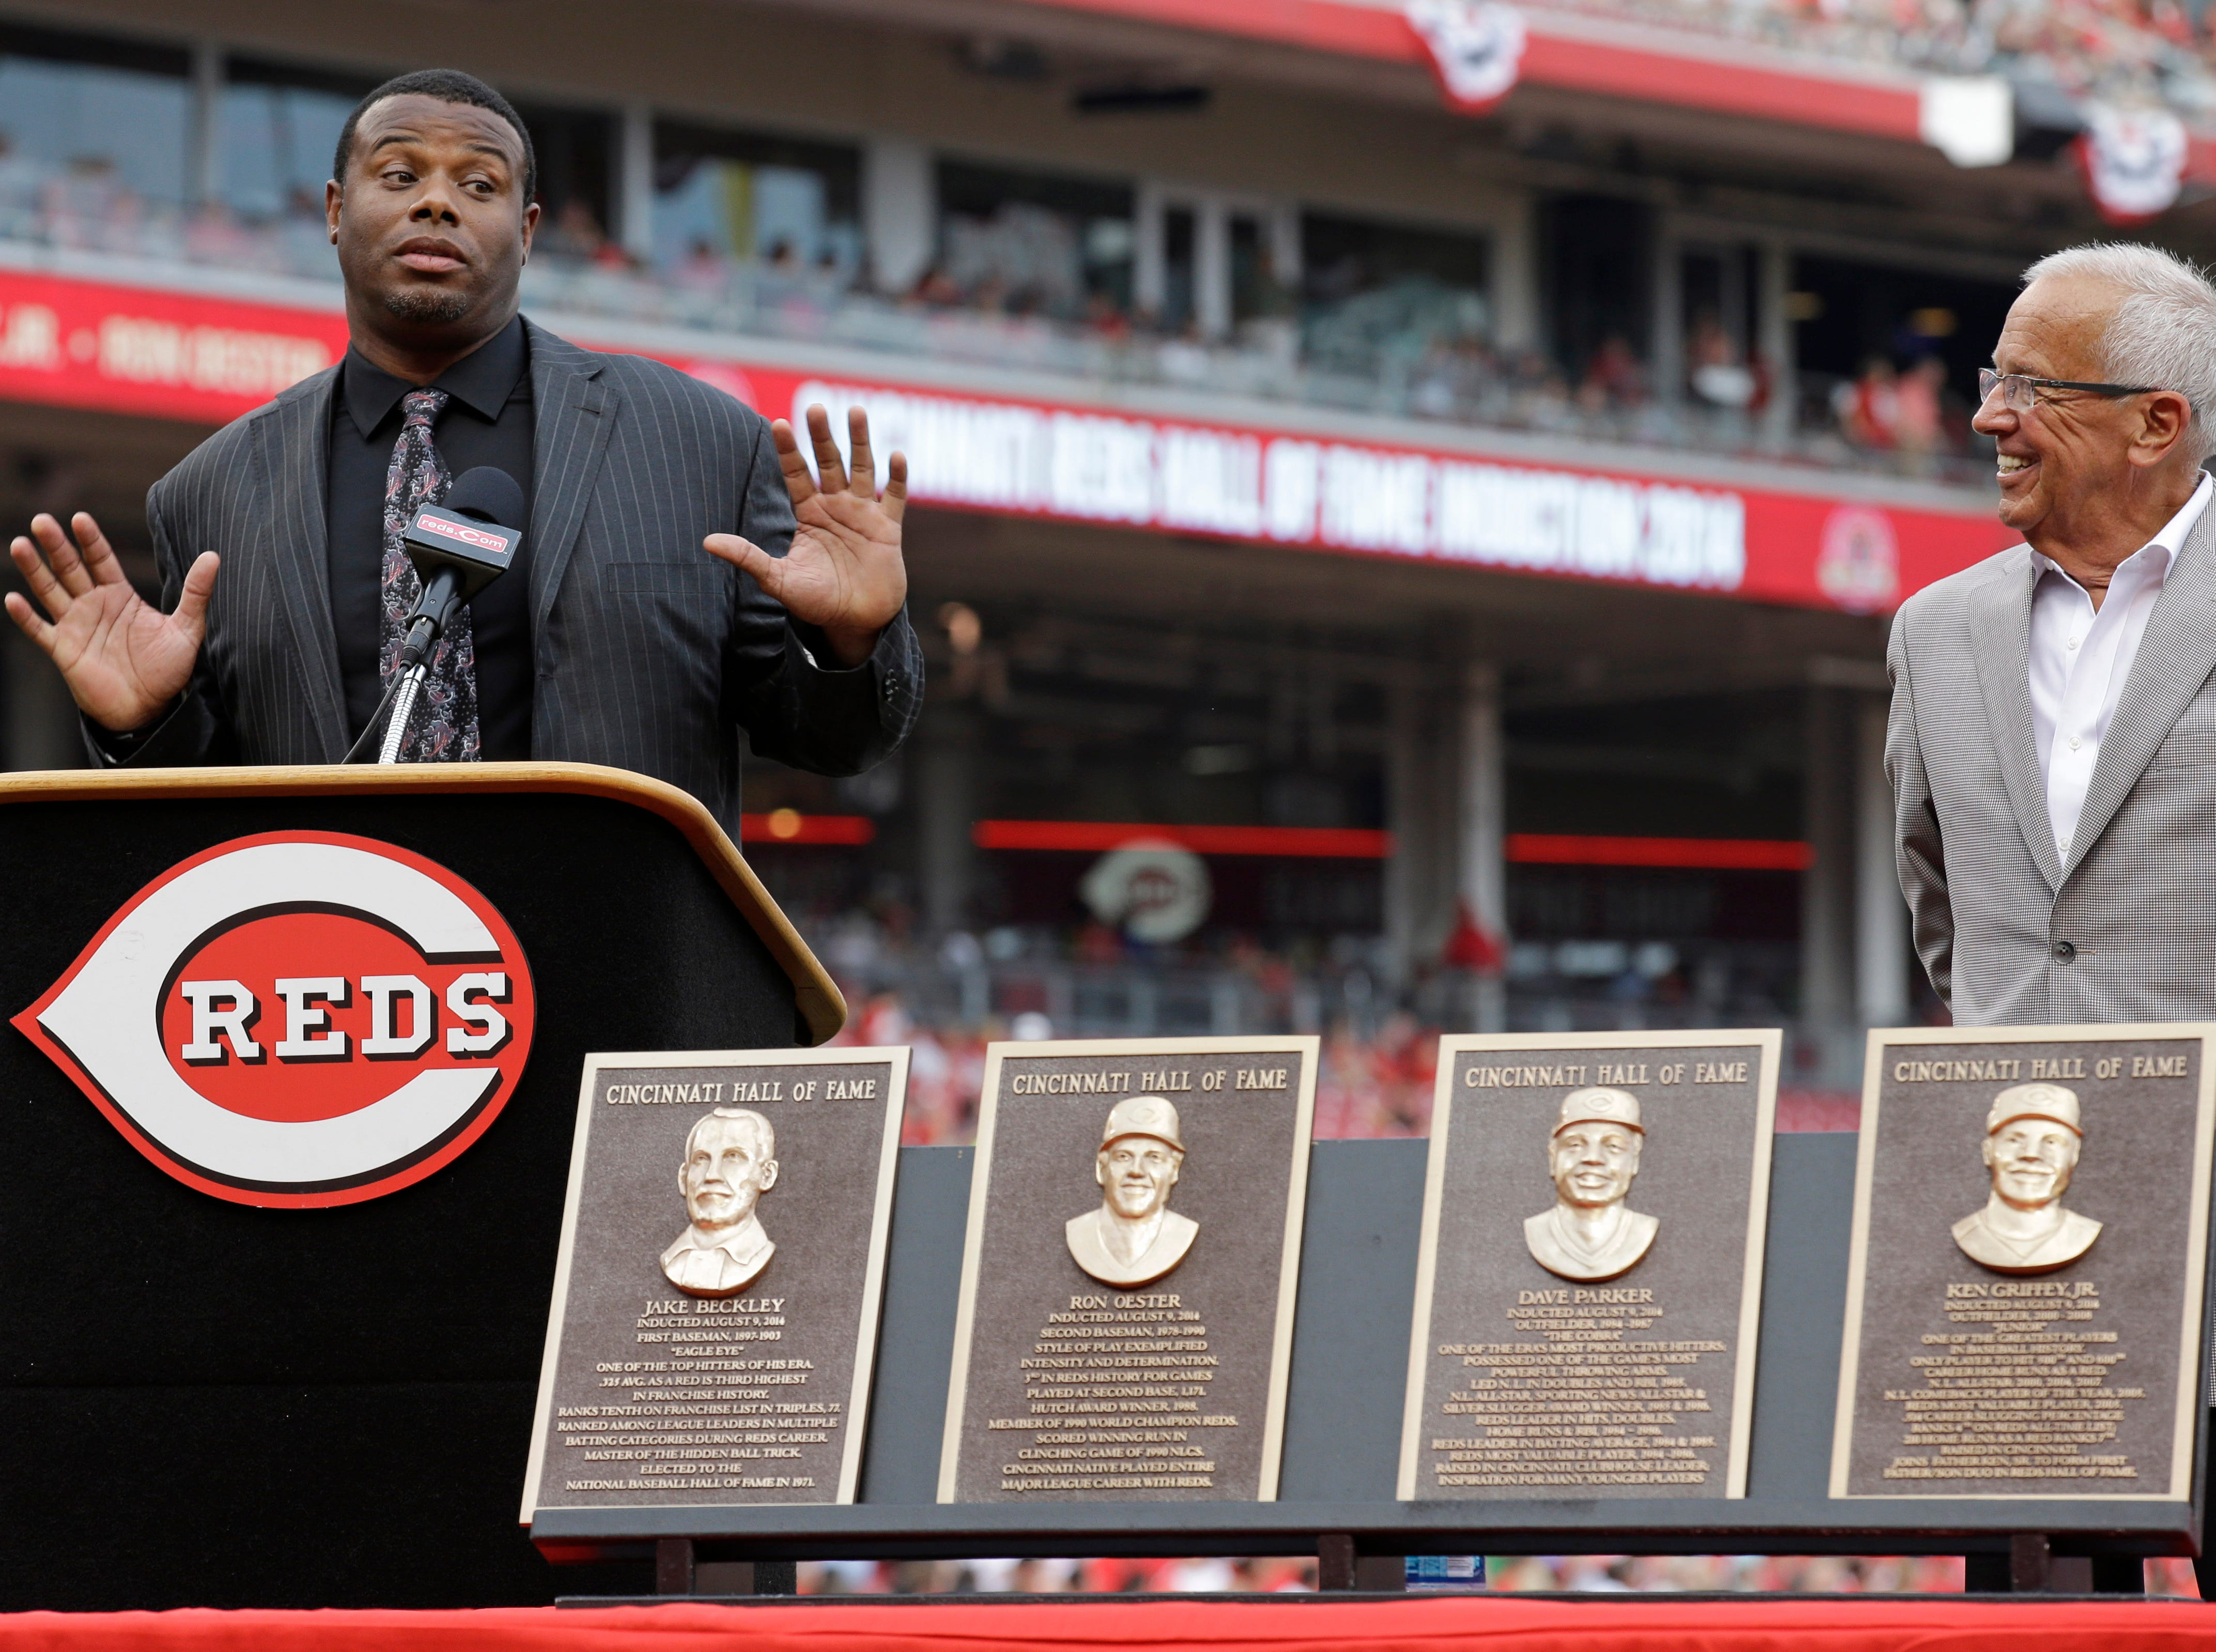 Former Cincinnati Reds player Ken Griffey Jr. speaks as he was inducted into the Reds Hall of Fame, Saturday, Aug. 9, 2014, prior to team's baseball game against the Miami Marlins in Cincinnati. Reds broadcaster Marty Brennaman listens at right.